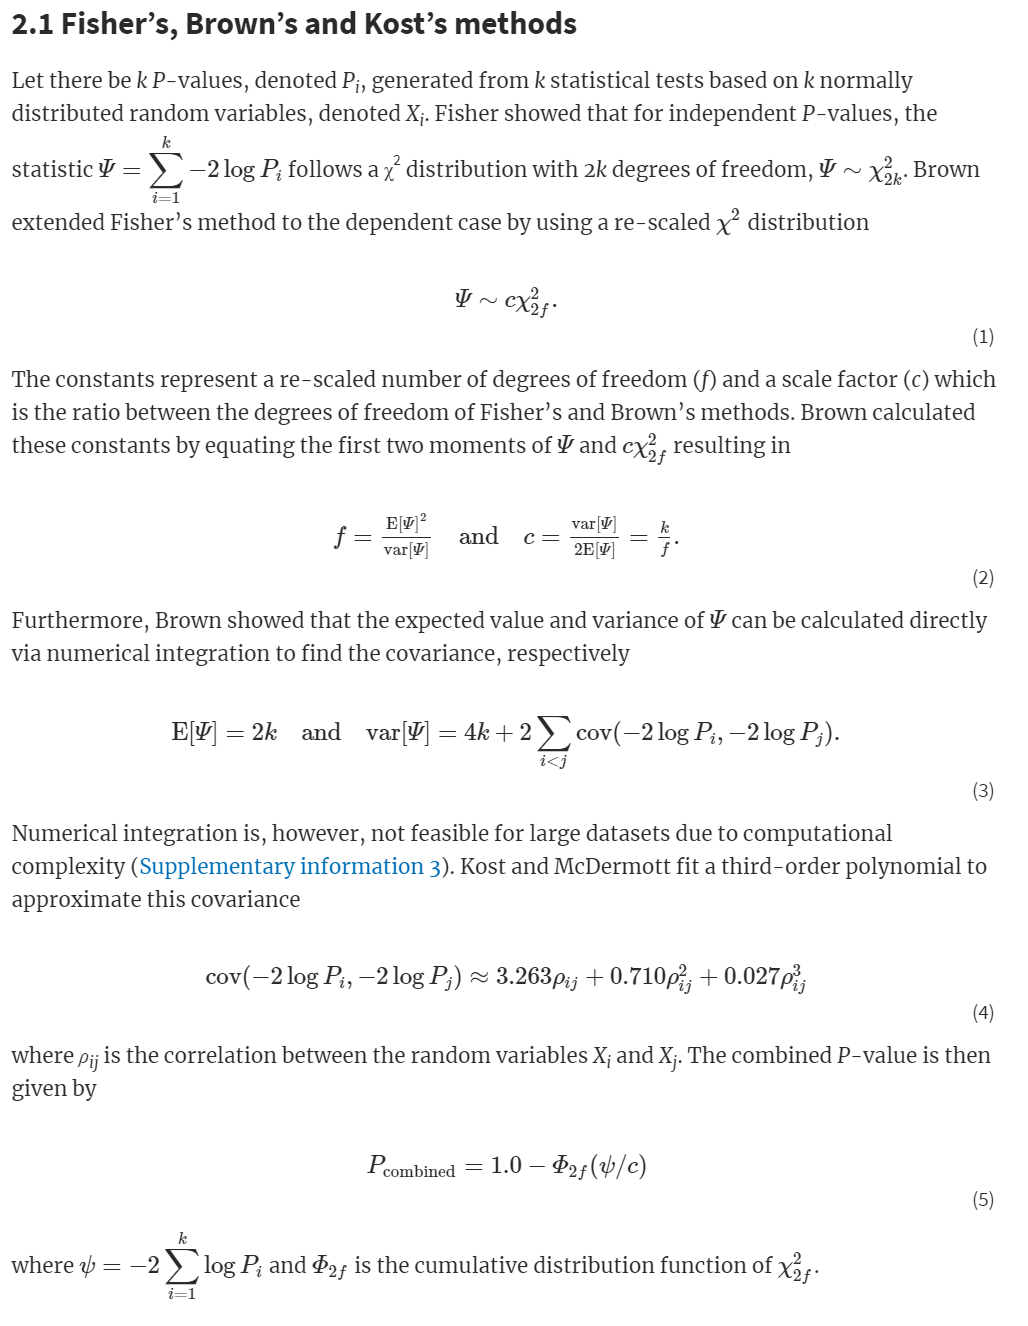 /wp/f4w/2020/2020-09-11-Combining dependent P-values.png